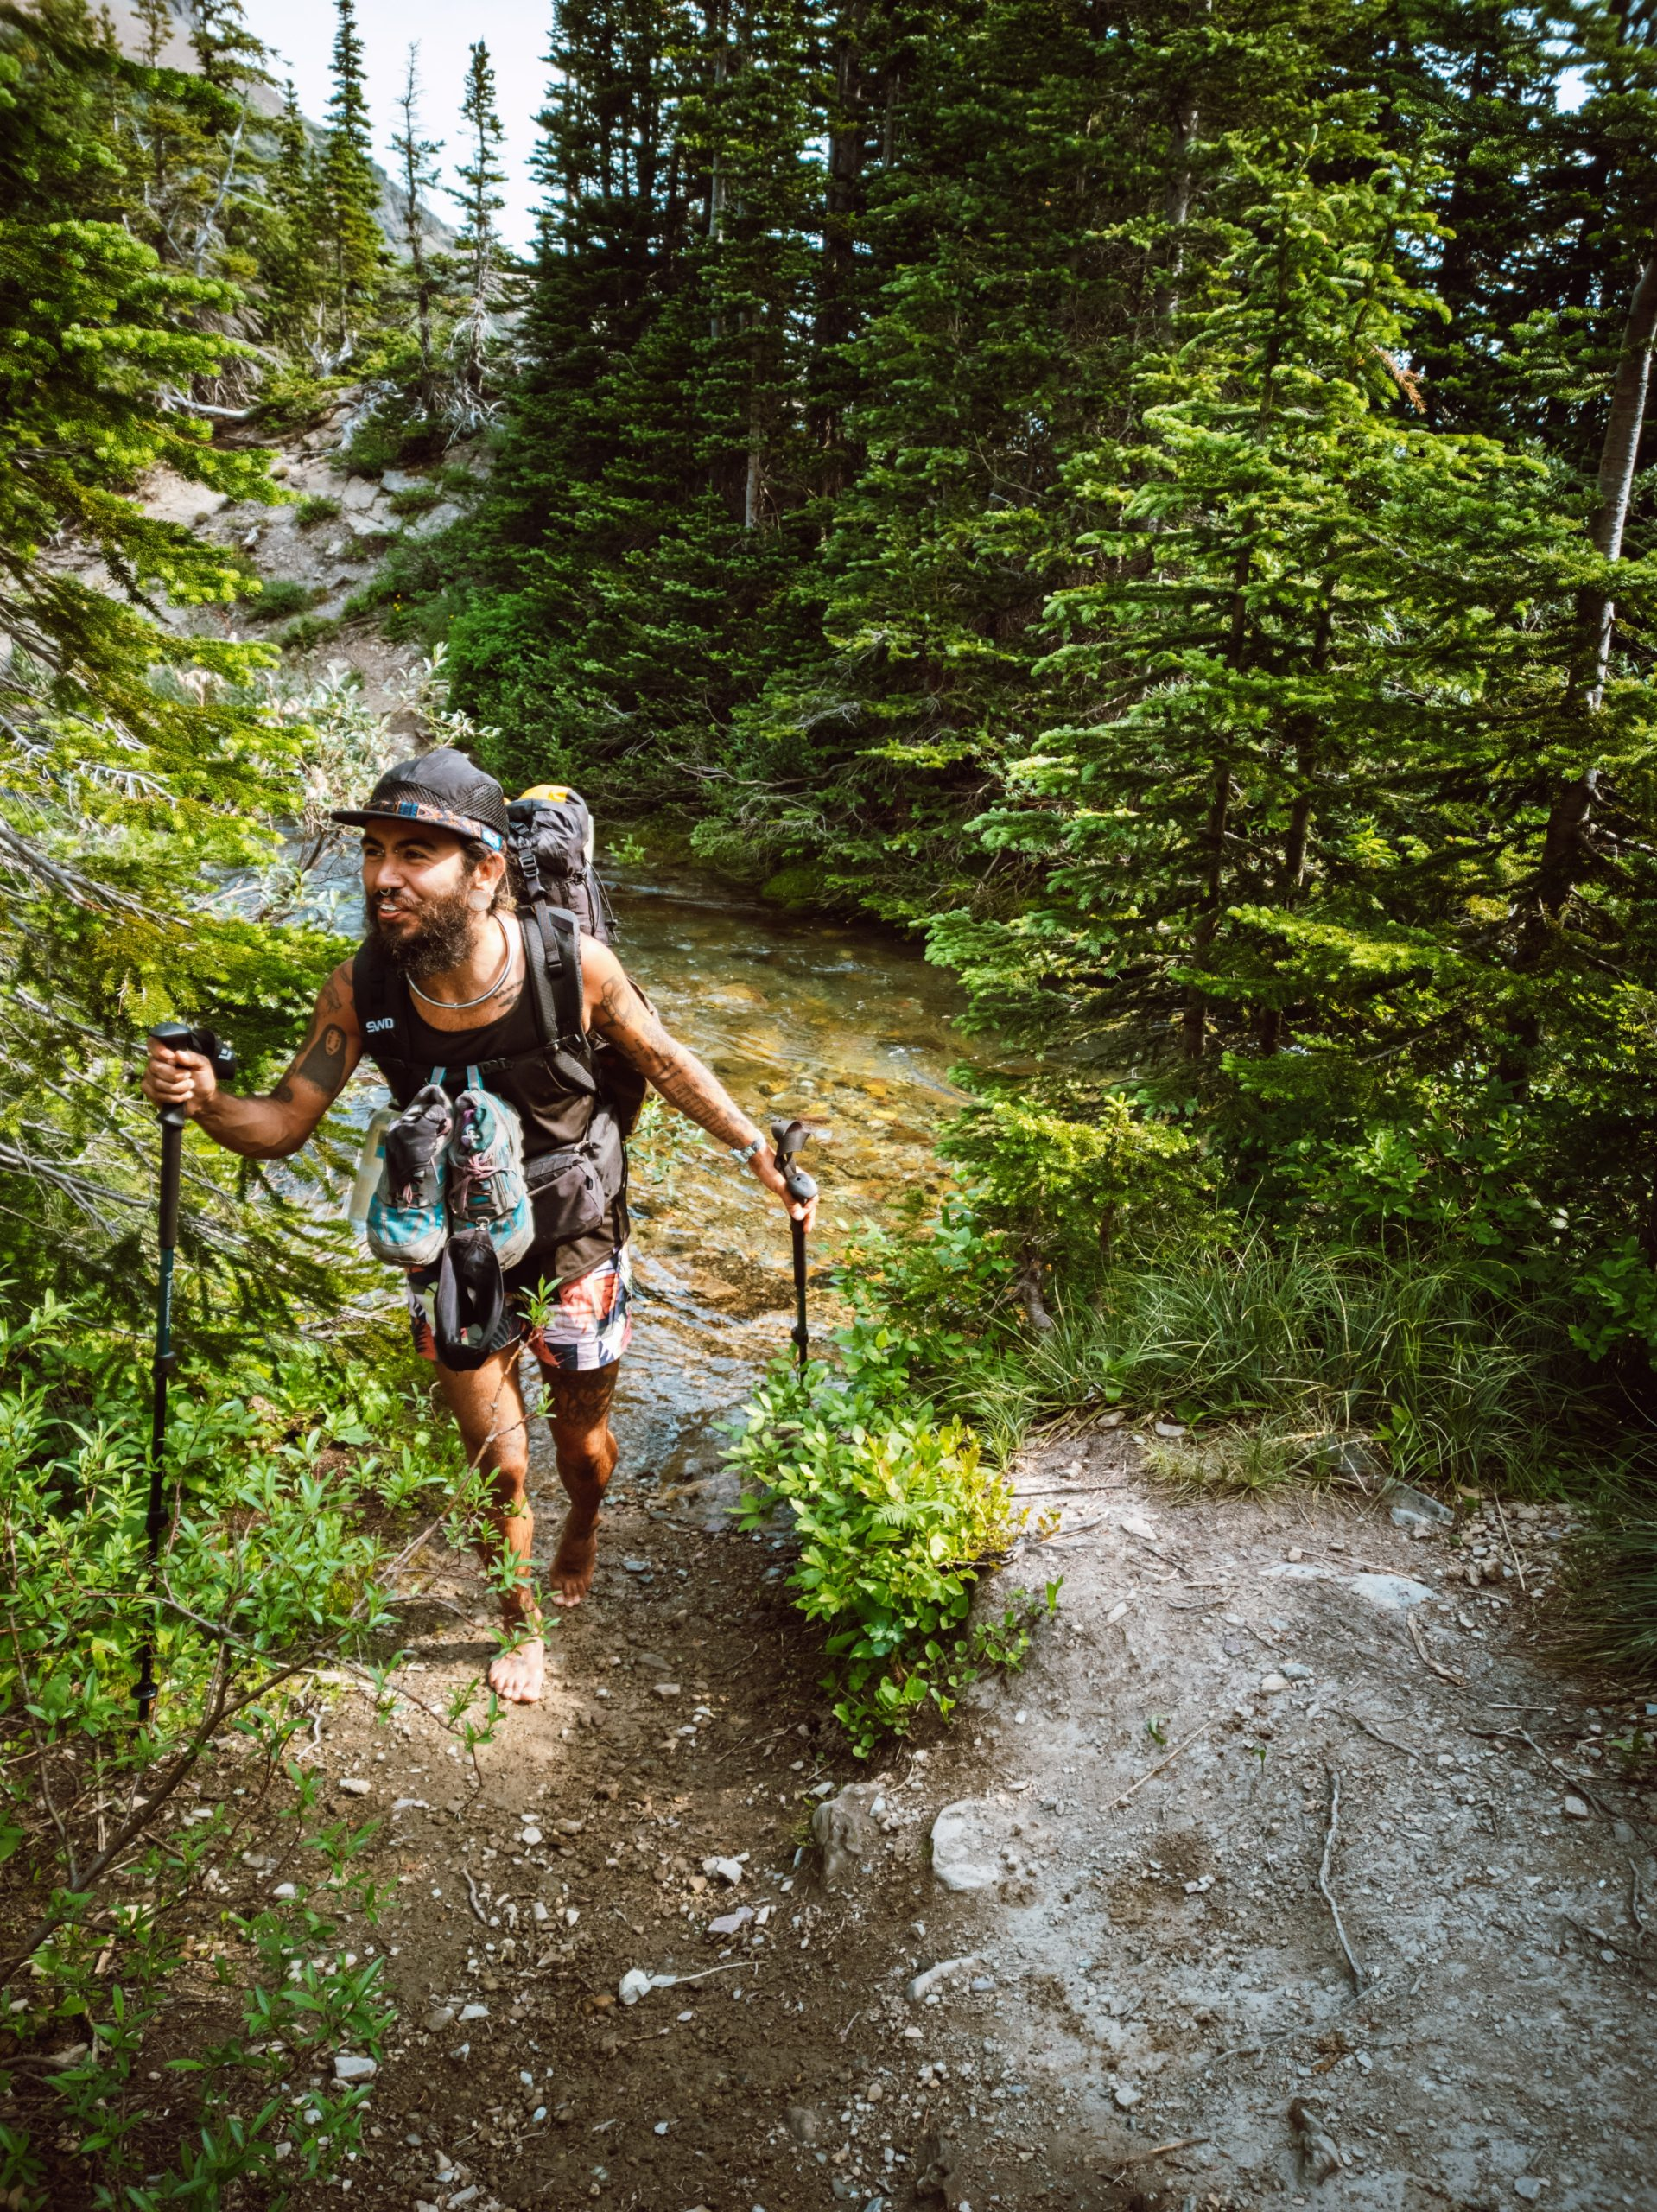 Flower the hiker is facing the camera in the midst of laughing, holding their trekking poles. Their shoes are tethered to their chest strap as they are walking barefoot in front of a stream.